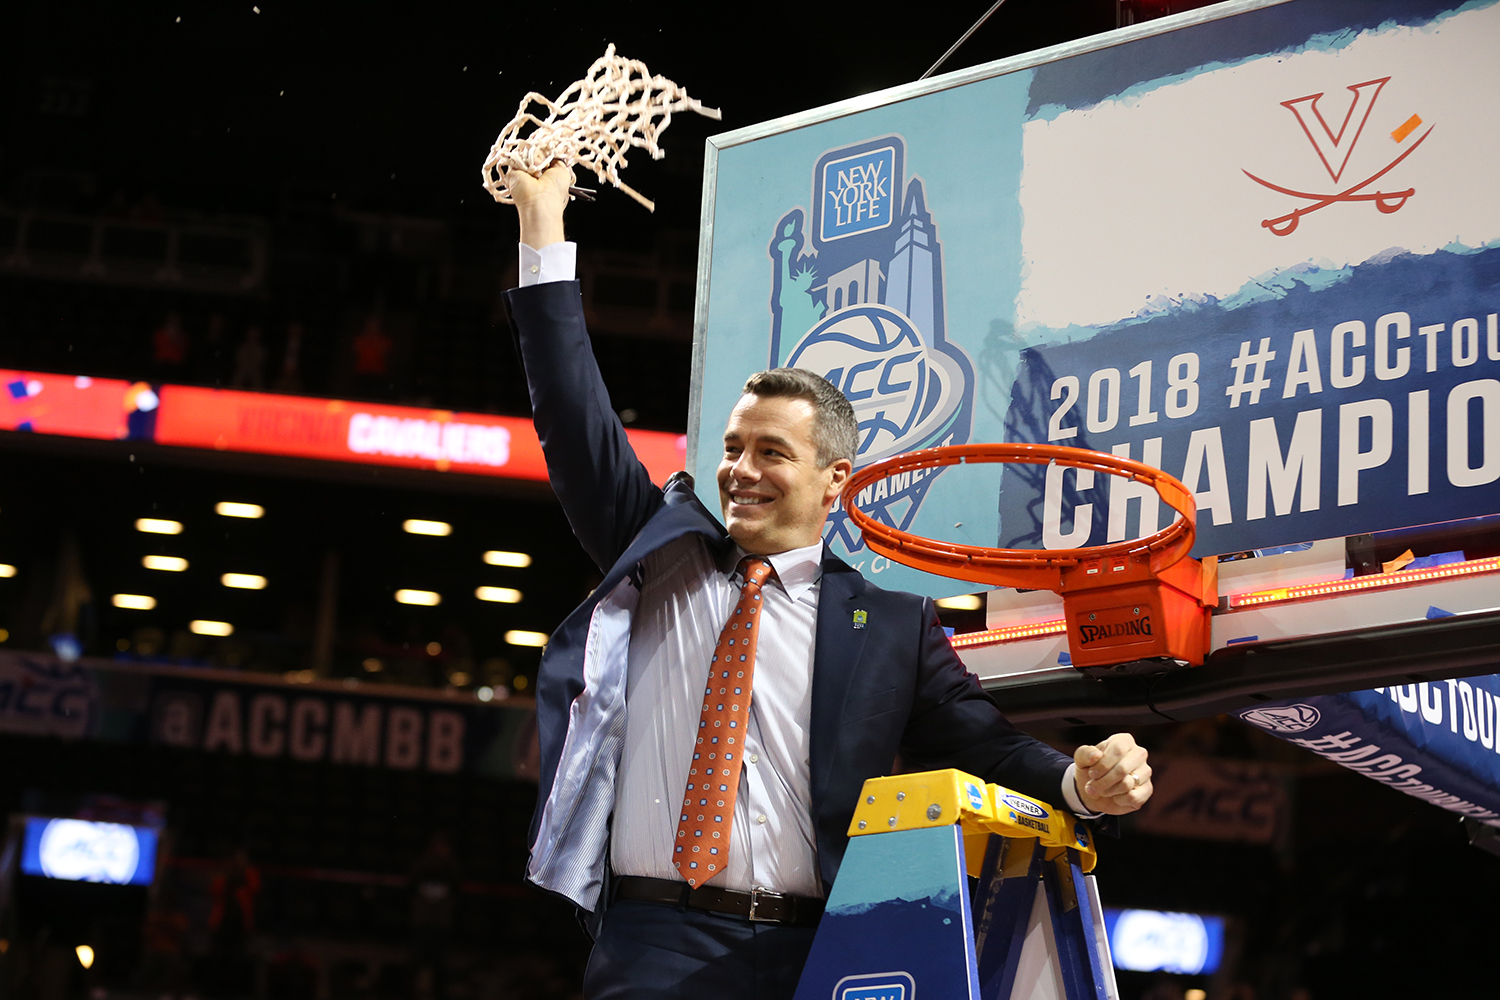 Tony Bennett, honored last week as the Henry Iba National Coach of the Year, led UVA to a NCAA No. 1 seed for the third time in five years. (Photo by Matt Riley, UVA Athletics)